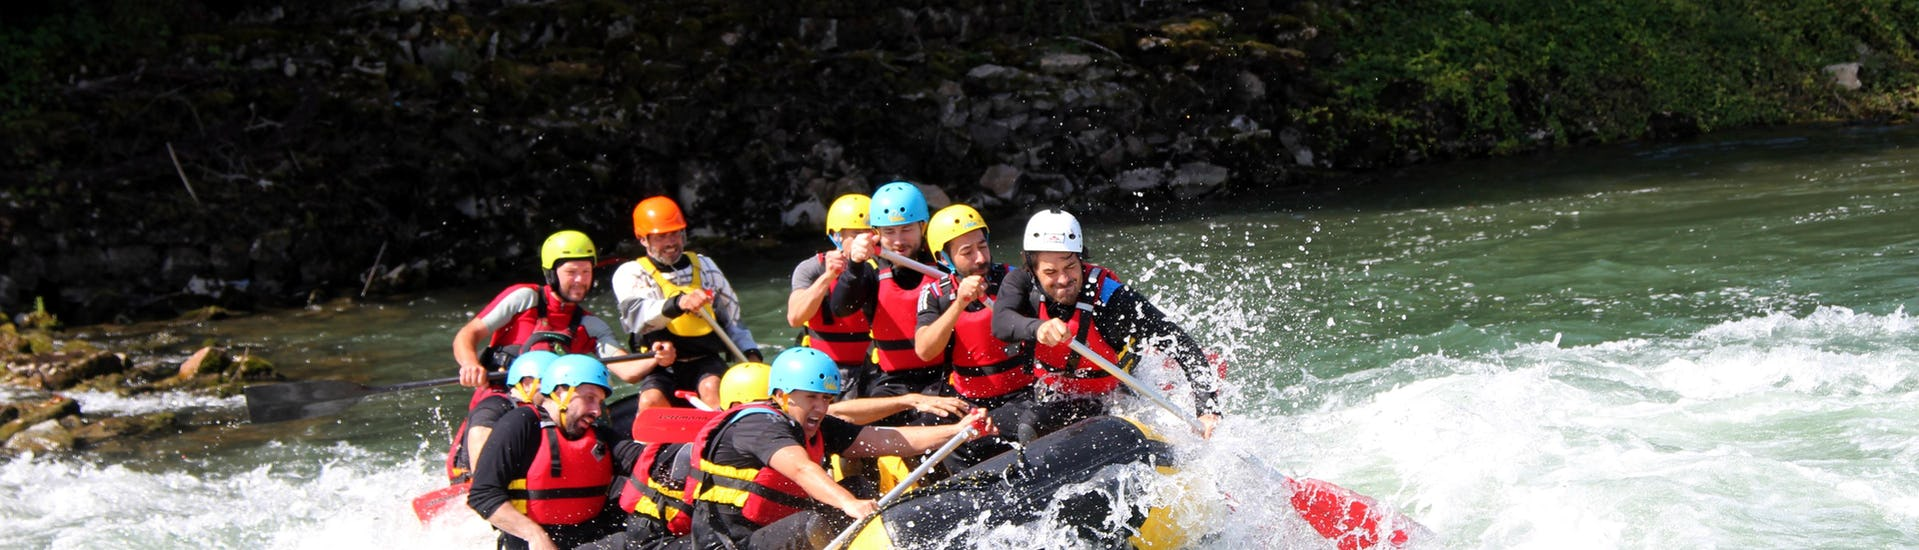 Rafting on the Rhine - Wild Rhine